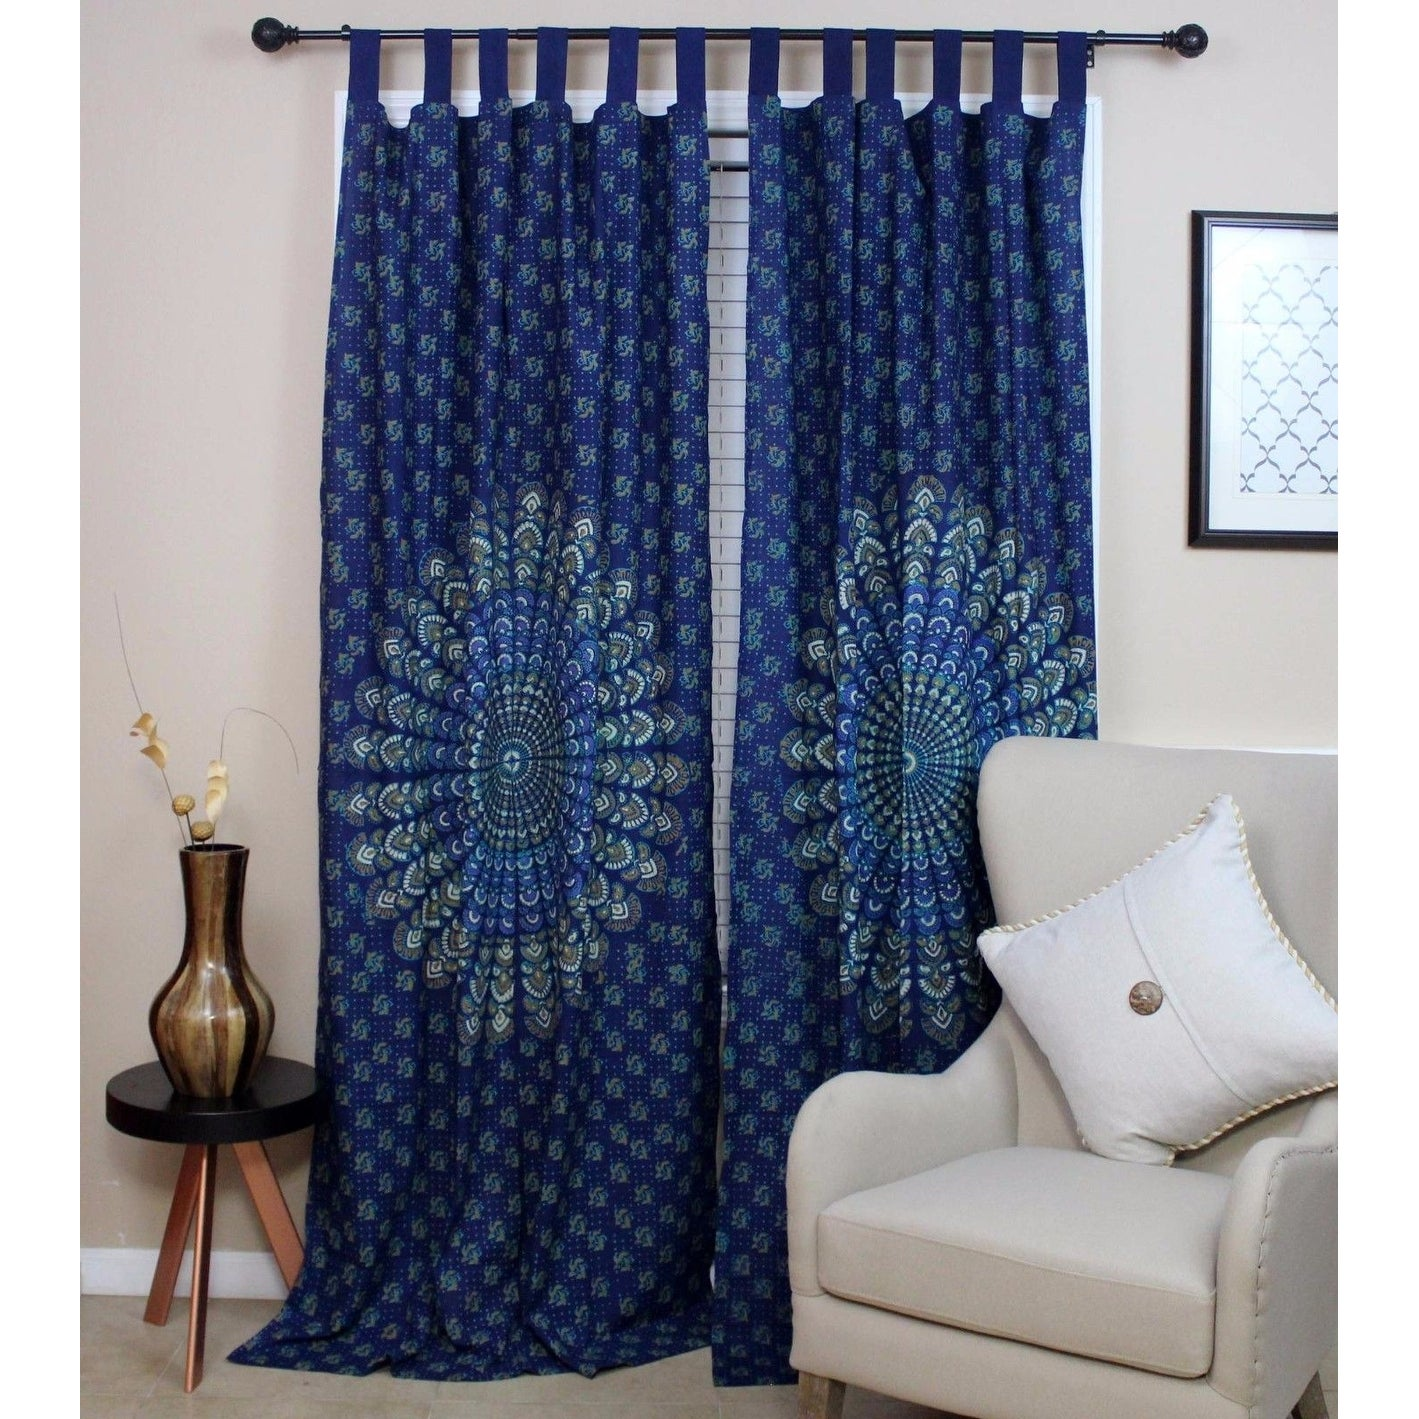 Handmade Sanganer Peacock Floral Design 100% Cotton Tab Top Curtain Drape Panel 44x88 in Blue and Red - 44 x 88 - Thumbnail 0